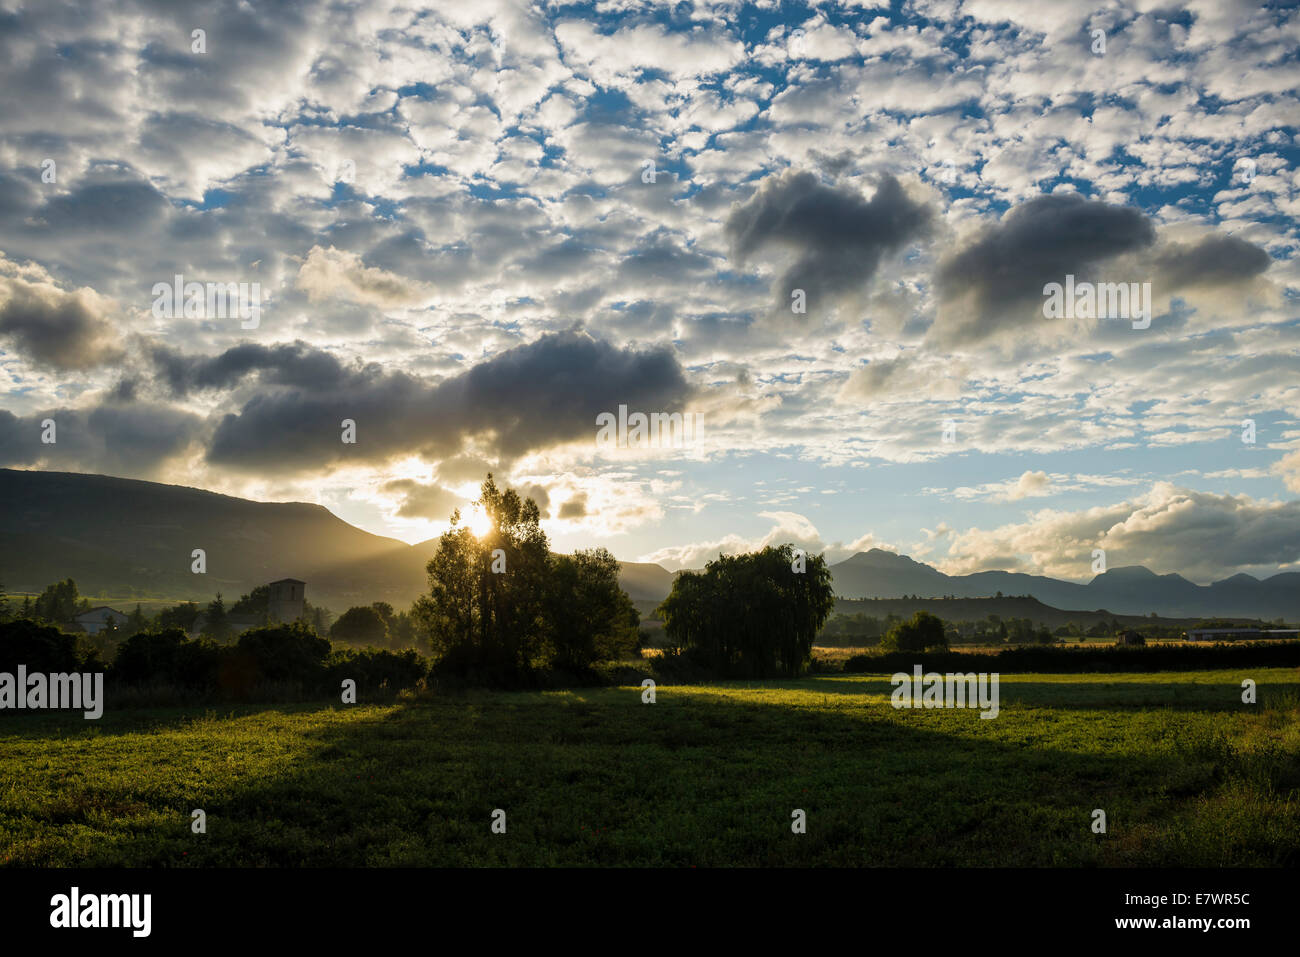 Sunrise, Sainte-Jalle, Drôme, Rhône-Alpes, Provence, France Stock Photo